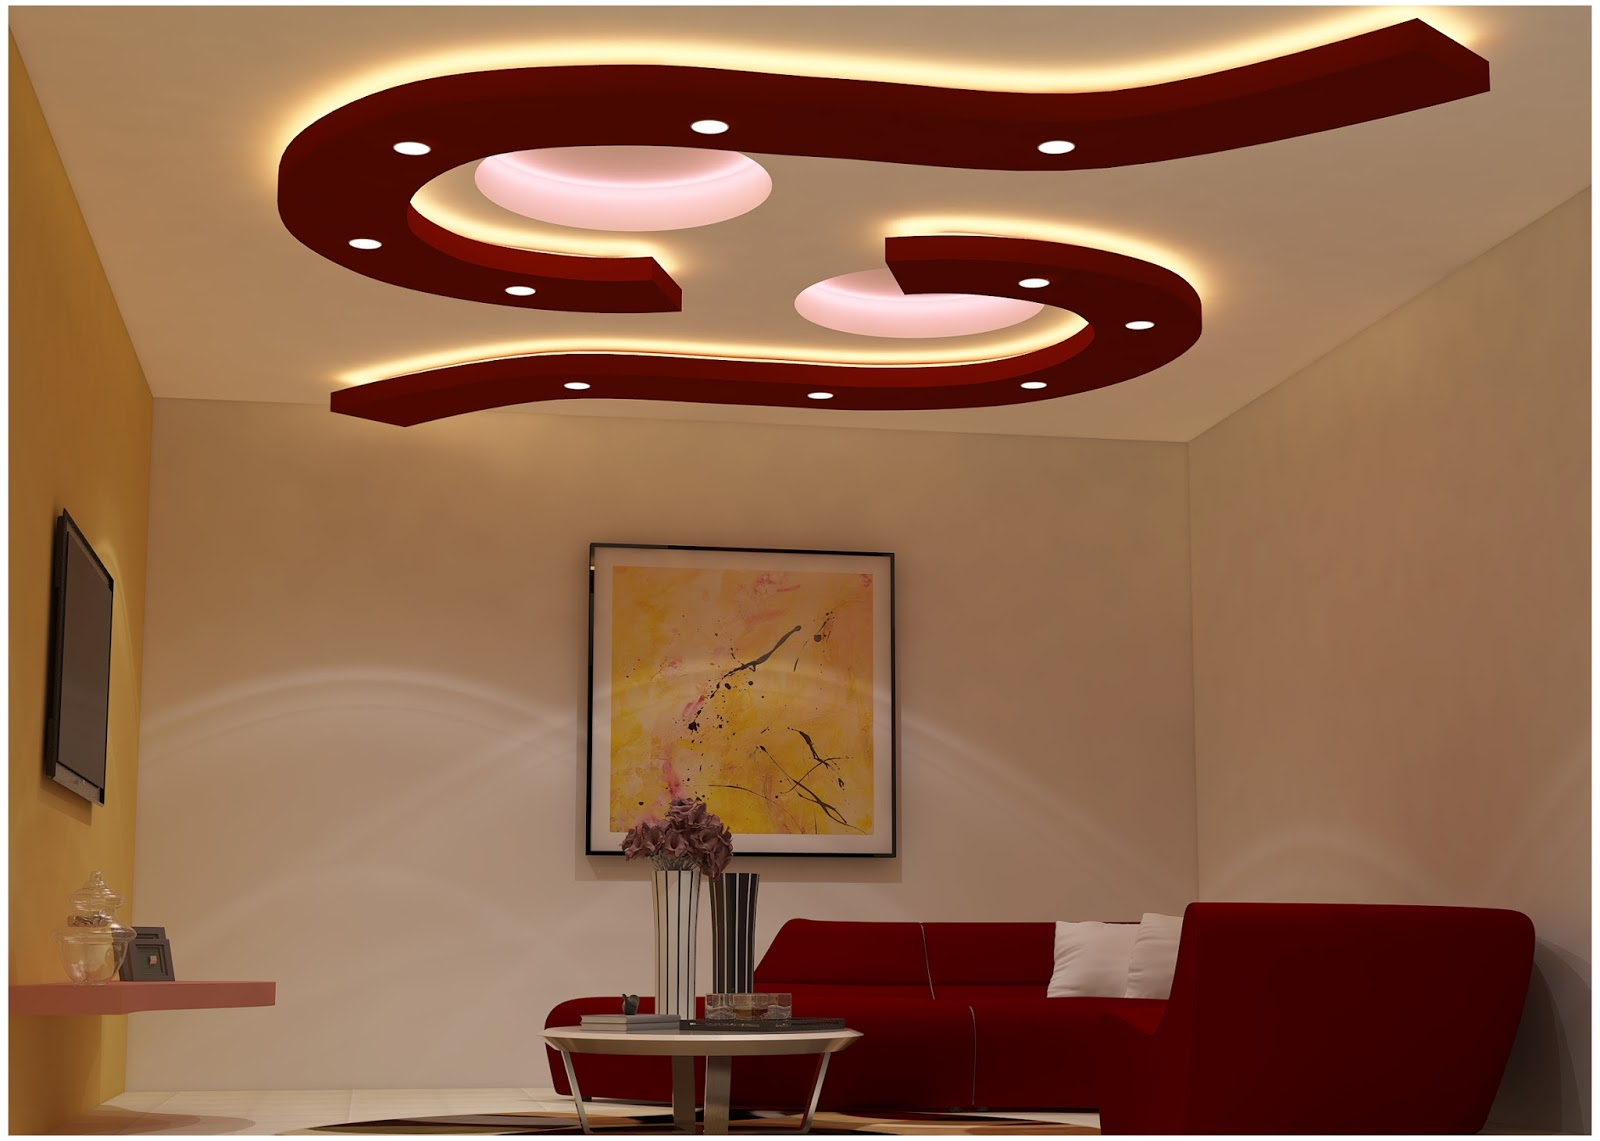 35 latest plaster of paris designs pop false ceiling for P o p bedroom designs